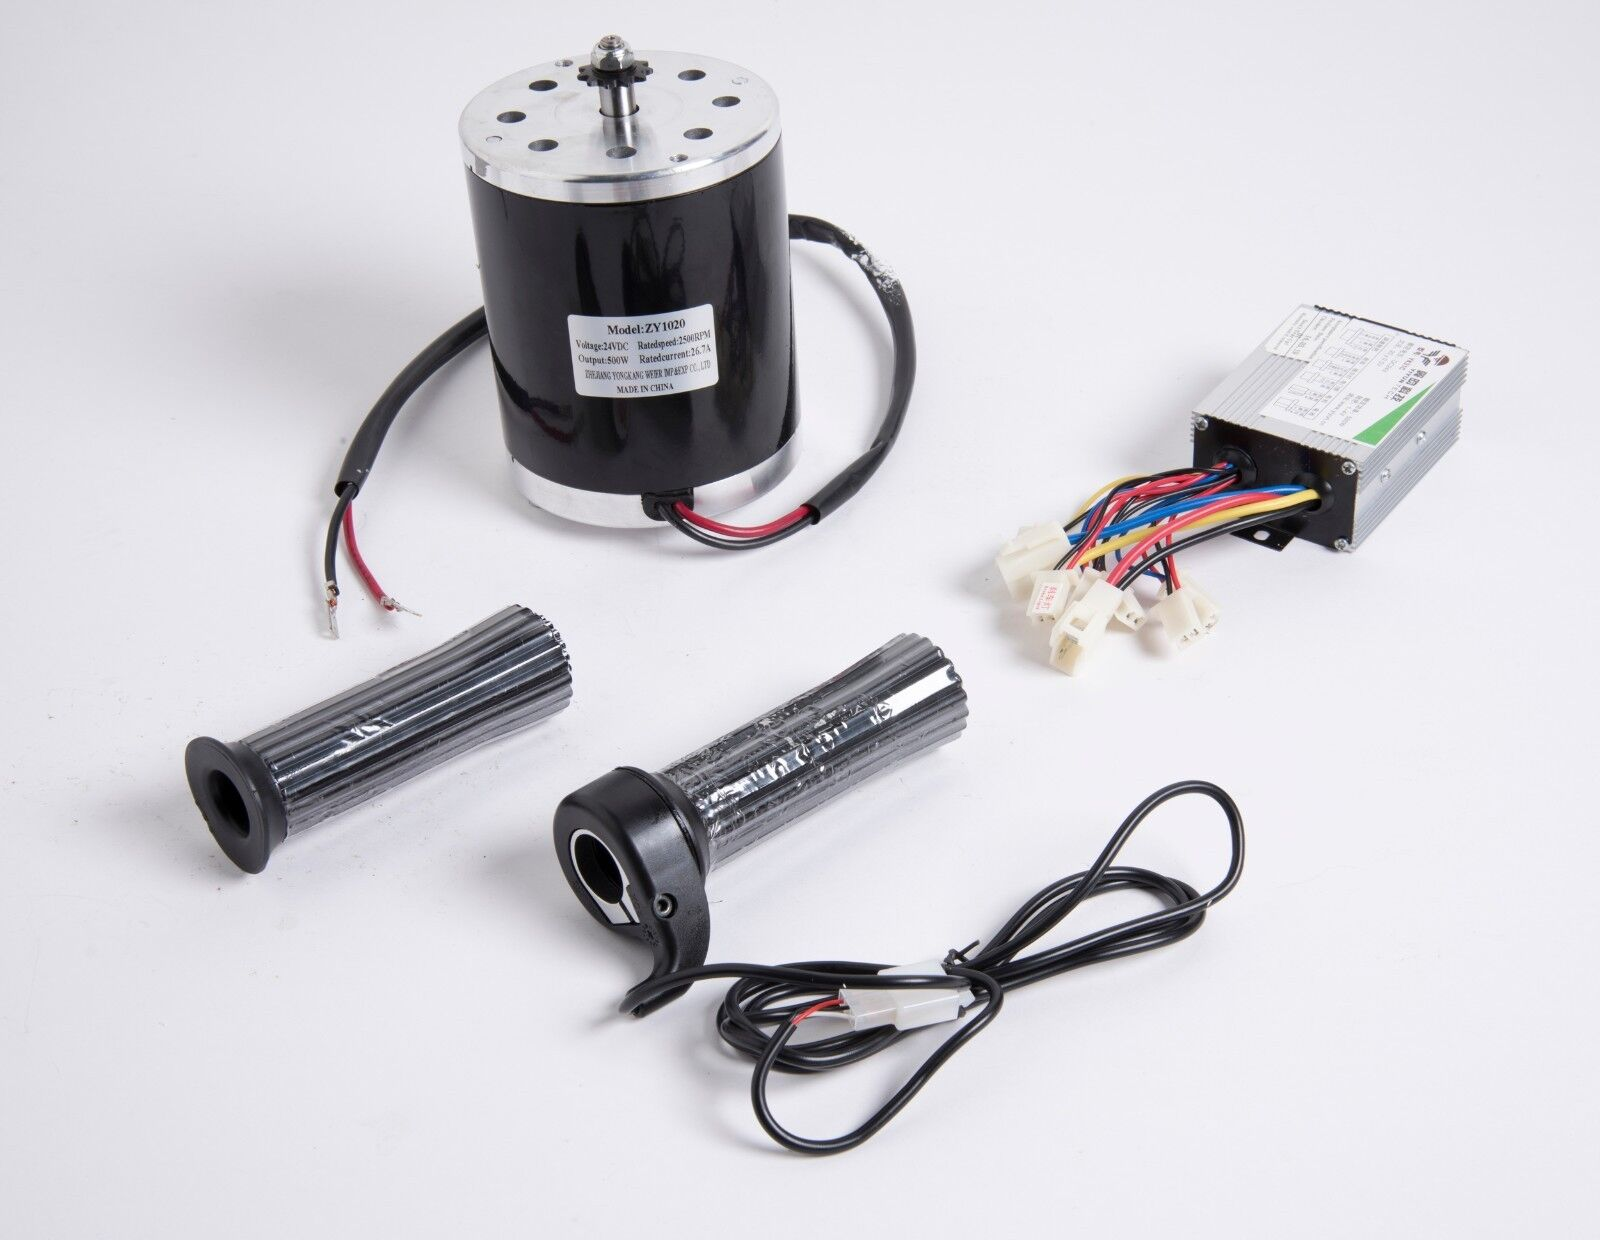 500 W 36 V DC electric 1020 motor kit w speed control & Throssotle f scooter ebike